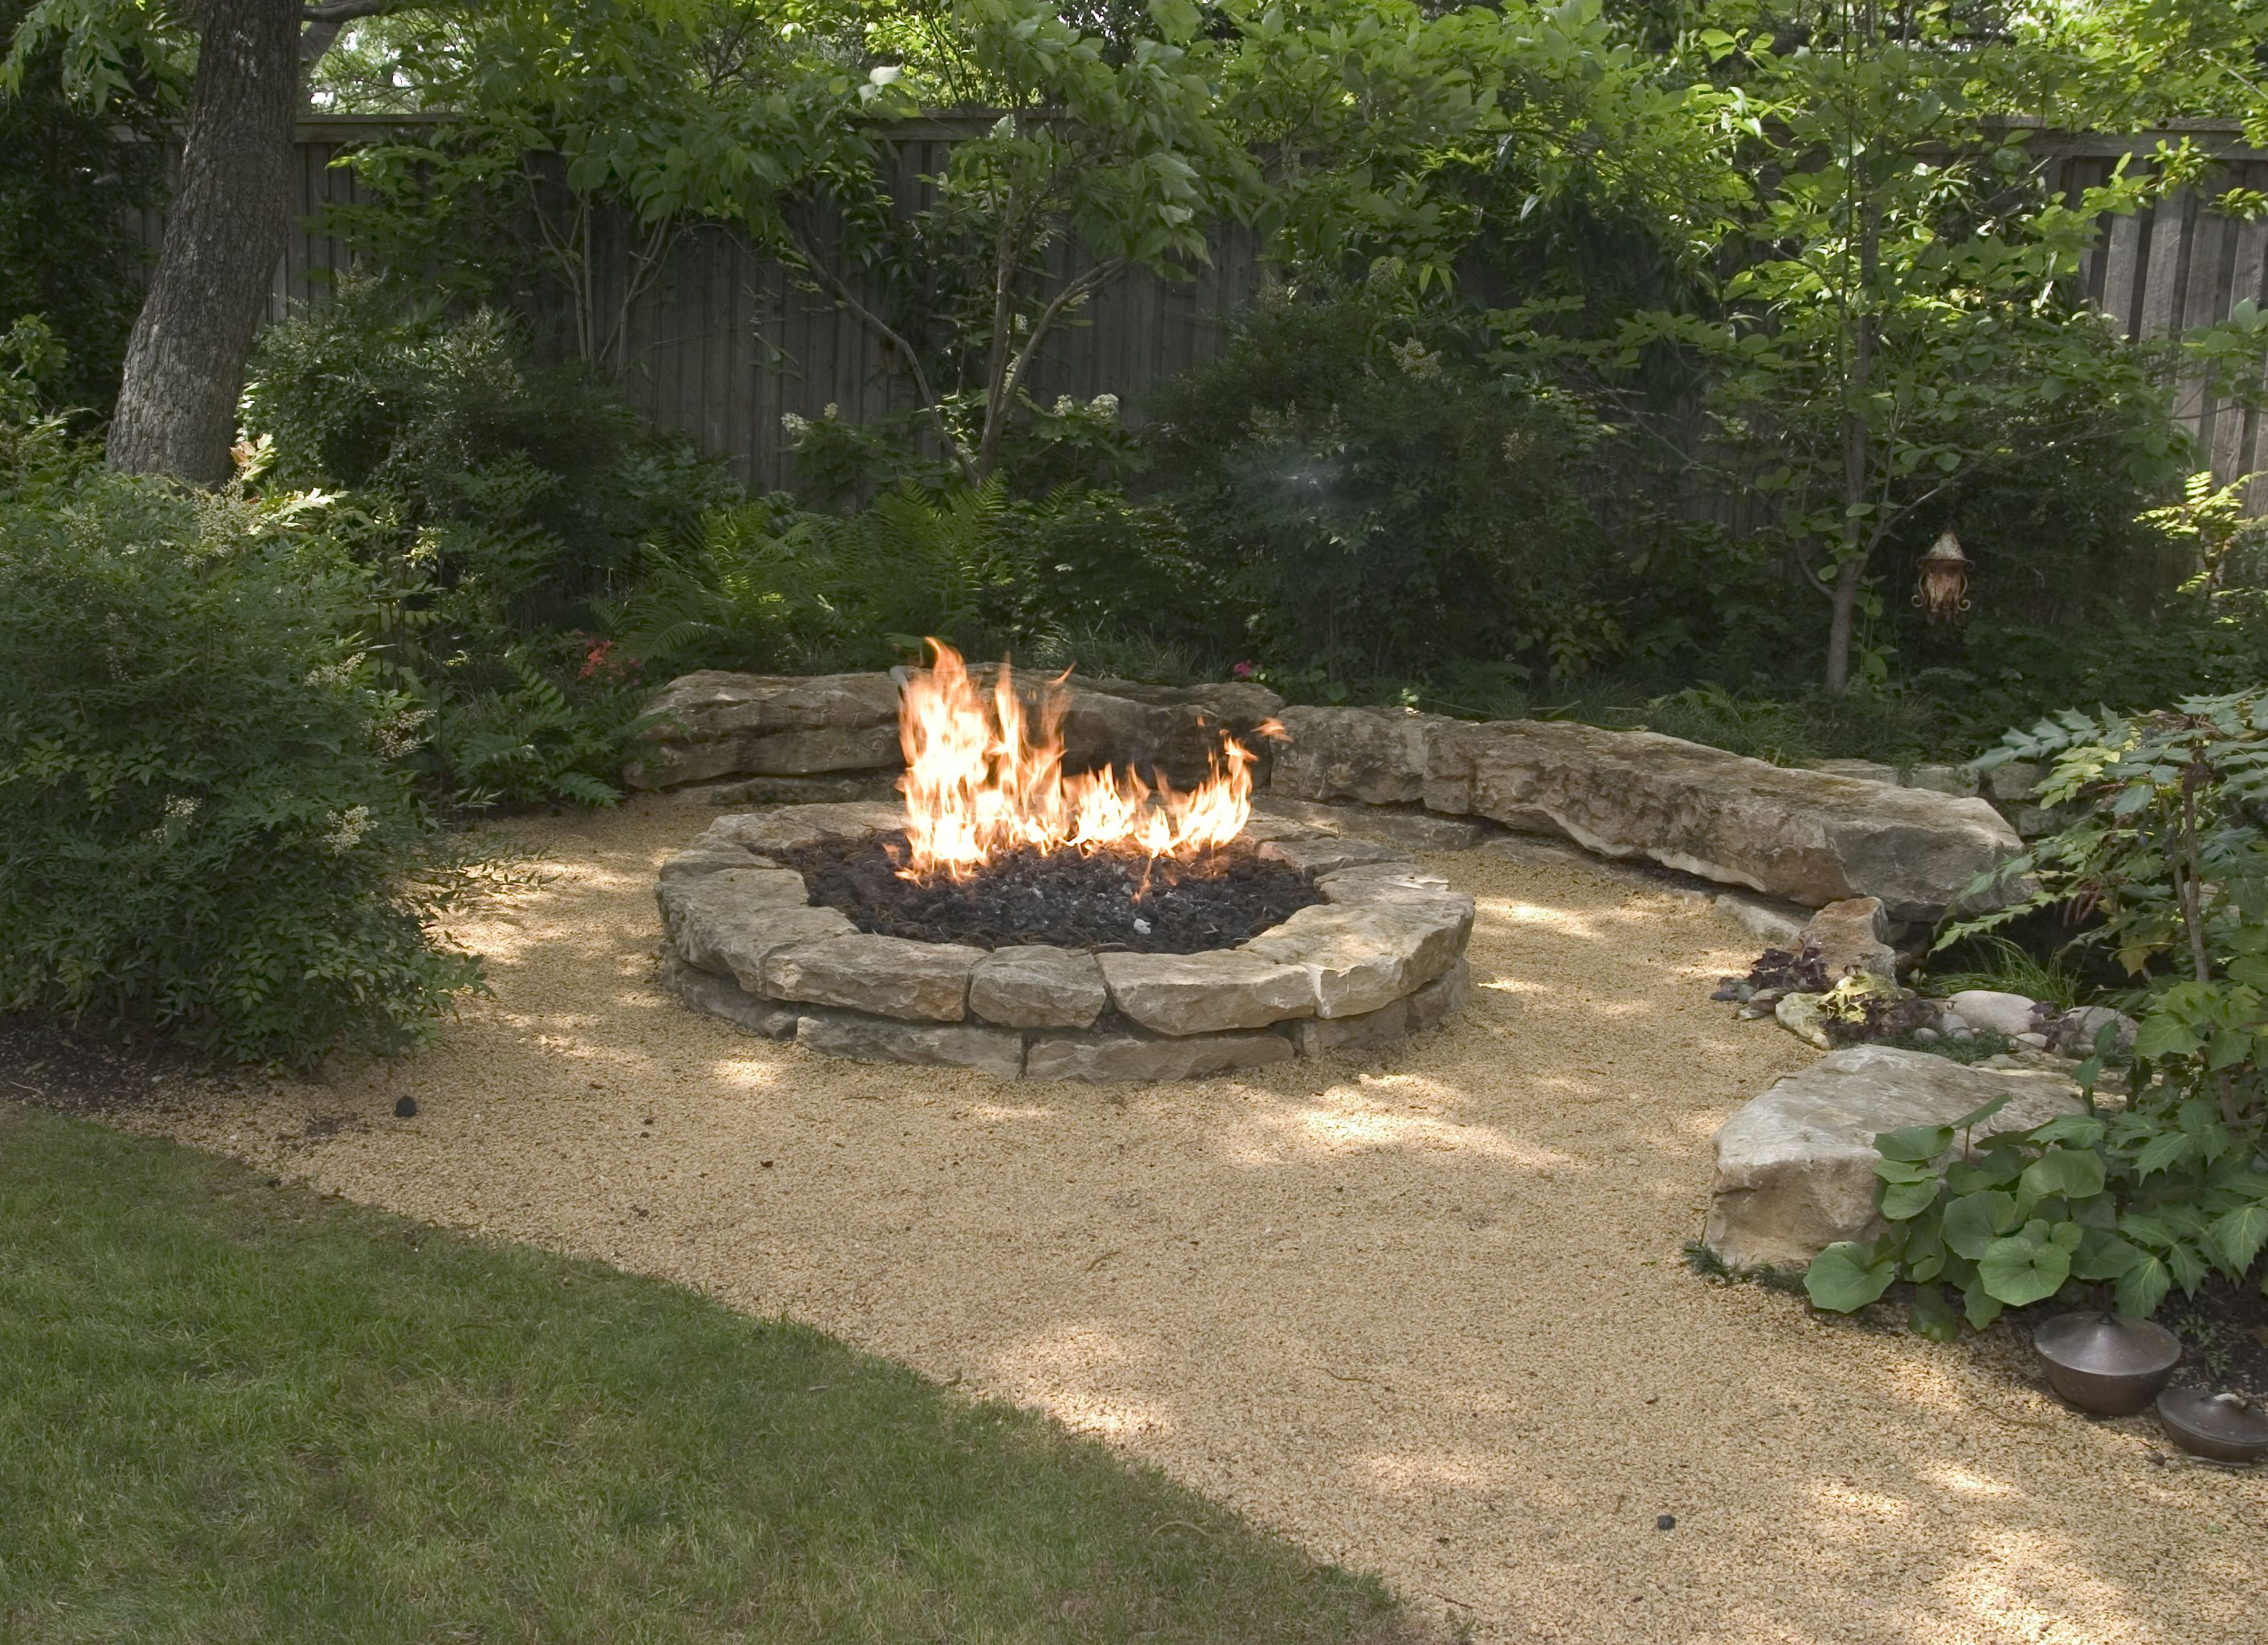 Superieur Fascinating Fire Pit Ideas Outdoor Decoration For Backyard Inspiration  Pictures: Sophisticated Rustic Stones Fire Pit Ideas With Stones Circled Fire  Pit ...